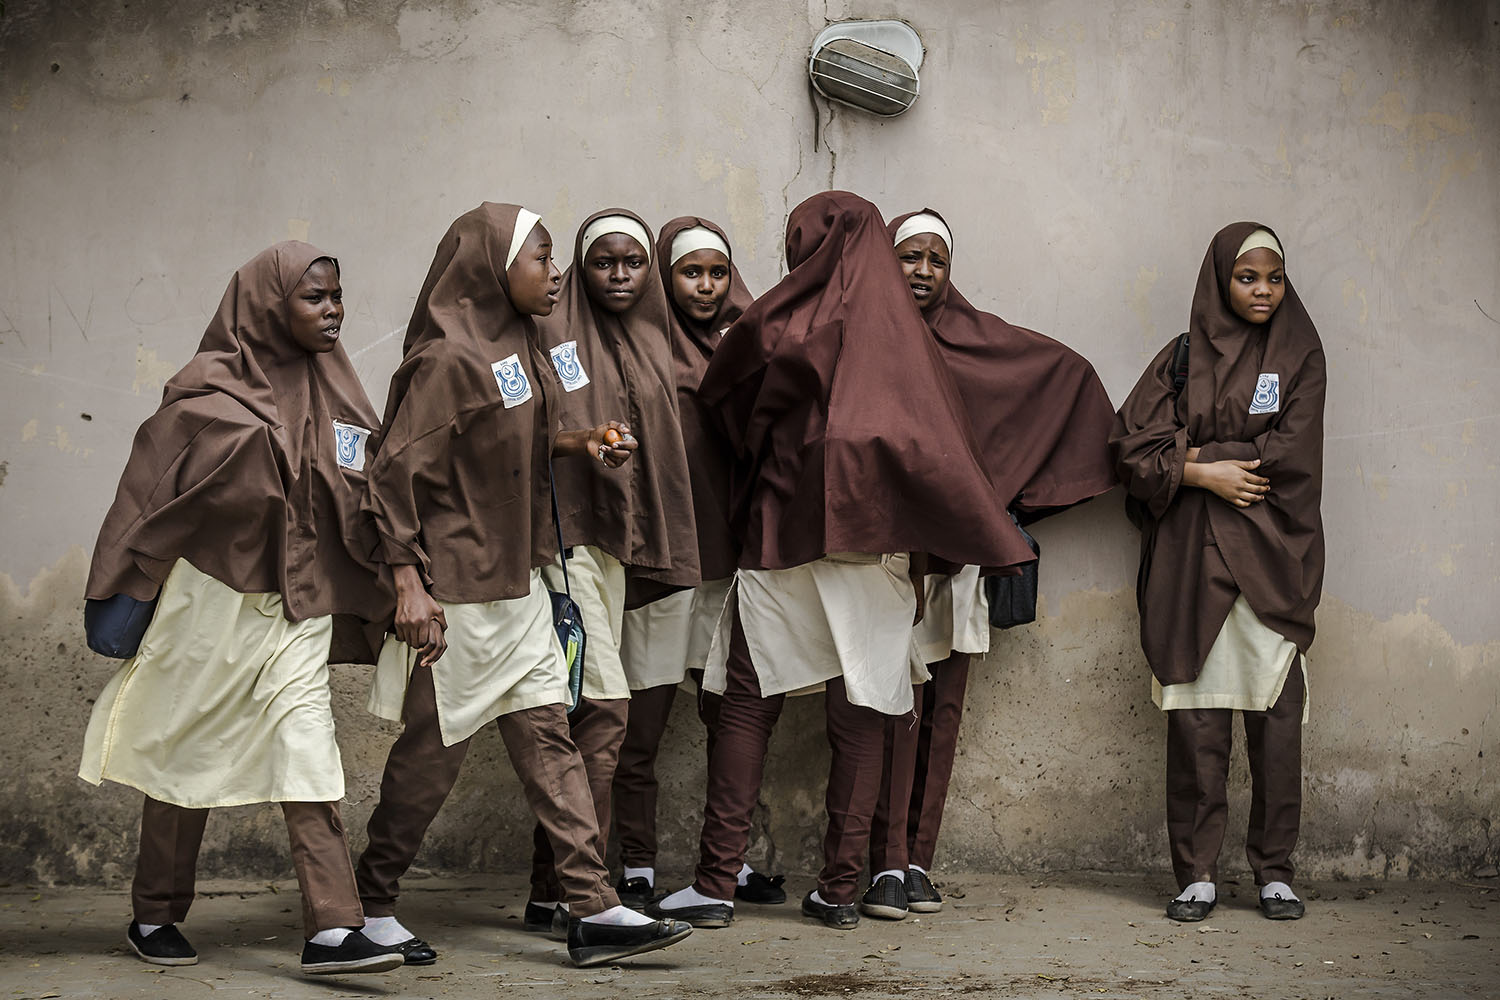 A group of girls leave their school during a rally by All Progressives Congress party supporters celebrating the re-election of the incumbent president and the leader of party in Kano, Nigeria, on Feb. 27. Luis Tato/AFP/Getty Images